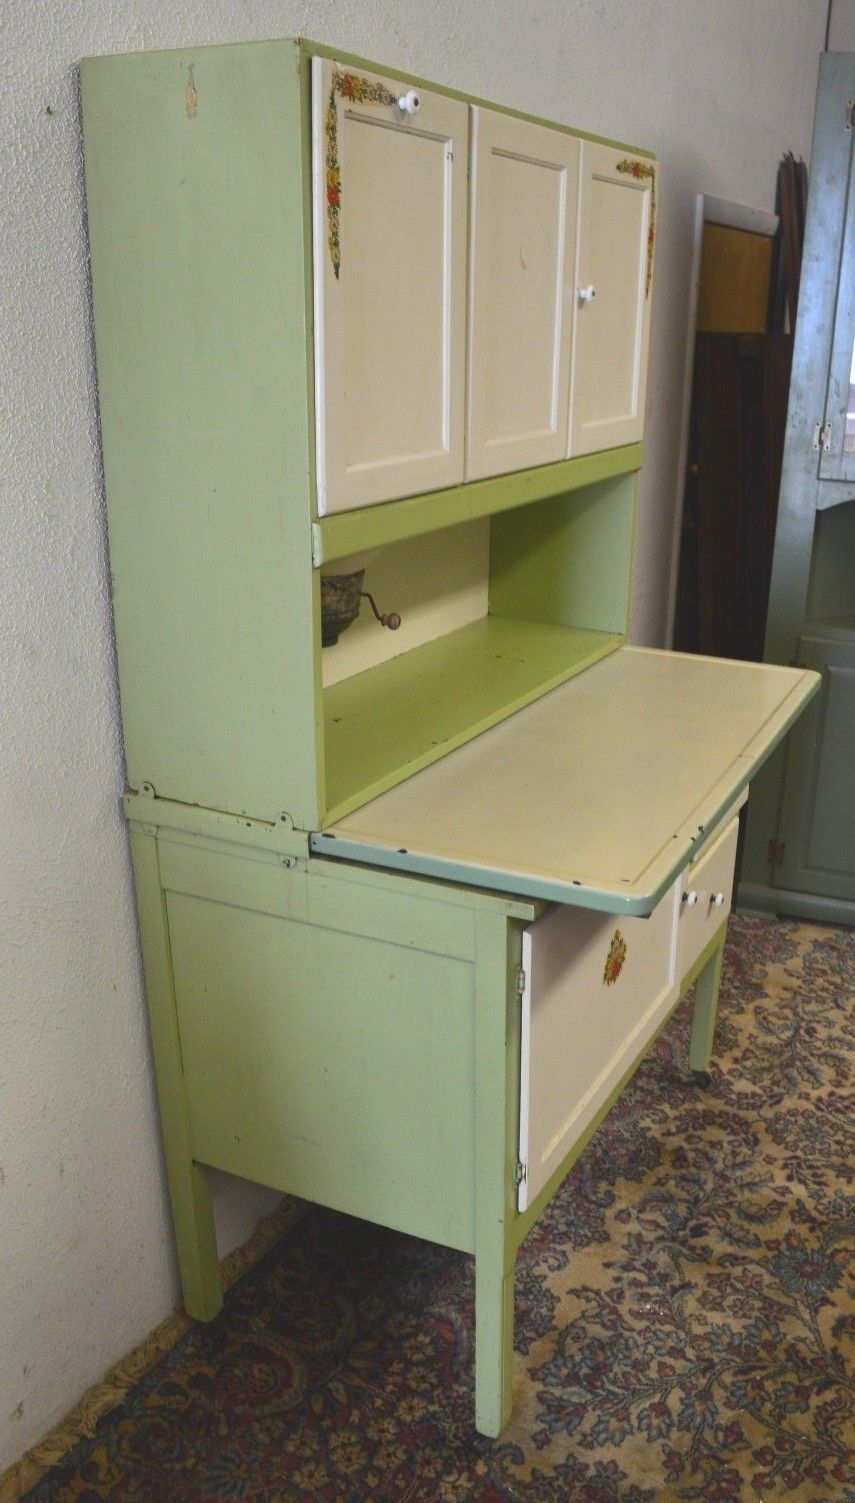 Antique 1920's Hoosier Cabinet with Flour Sifter Porcelain Top Vintage |  eBay - Antique 1920's Hoosier Cabinet With Flour Sifter Porcelain Top